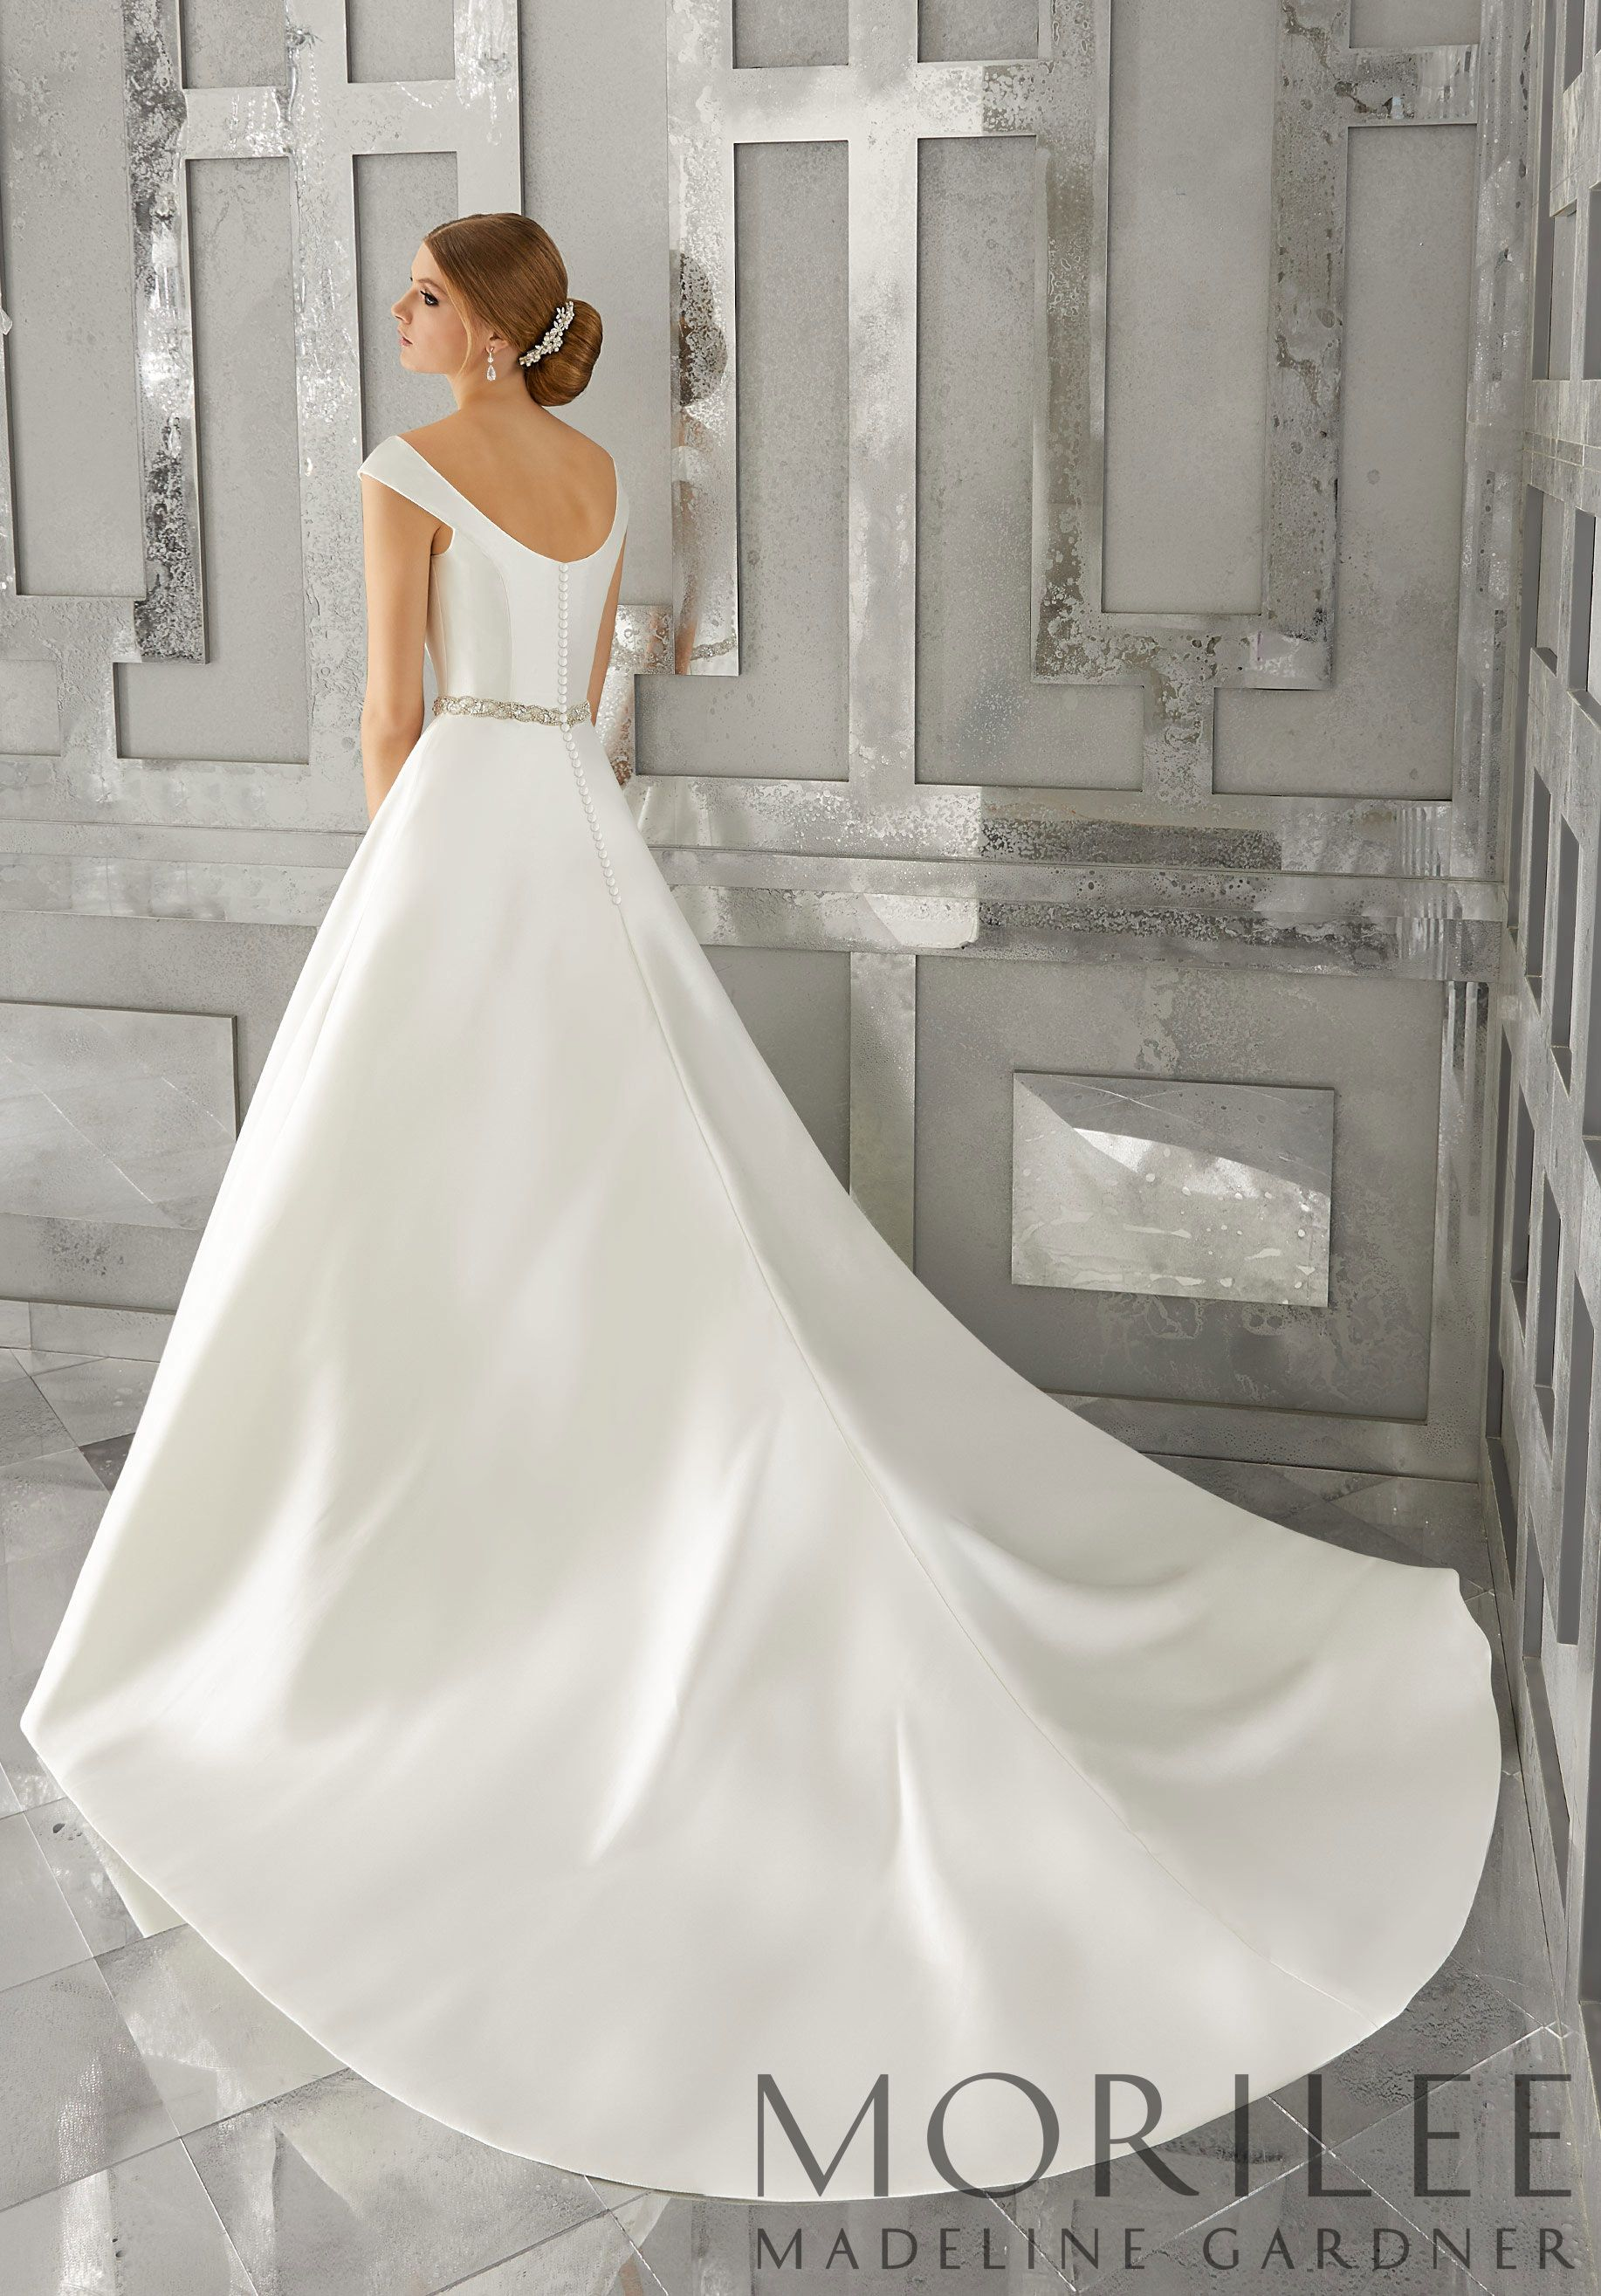 e1bda1cce Morilee | Madeline Gardner, Marquesa Bridal Gown. Classic, Chic, and  Modern, This Marcella Satin A-Line Wedding Dress Features an Elegant  Off-the Shoulder ...